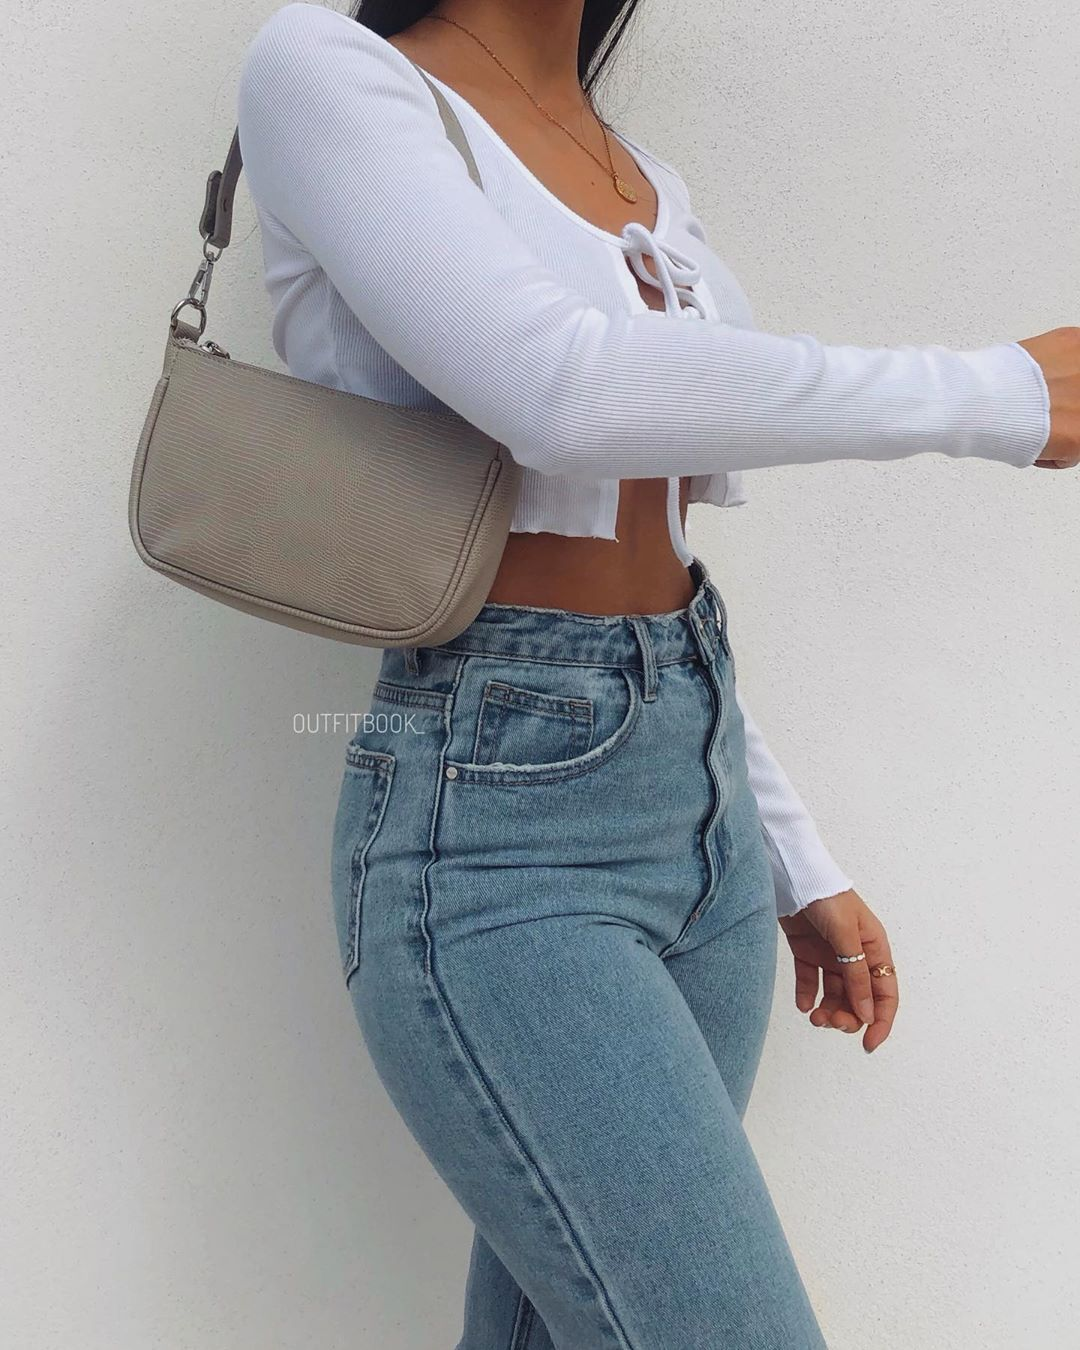 "Photo of www.outfitbook.fr on Instagram: ""How cute is this outfit 💓 new in: Shoulder bag in beige + this Crop top with double tie detail 🤍 🔎Top: 2012 🔎Bag: BC301B Outfitbook.fr"""